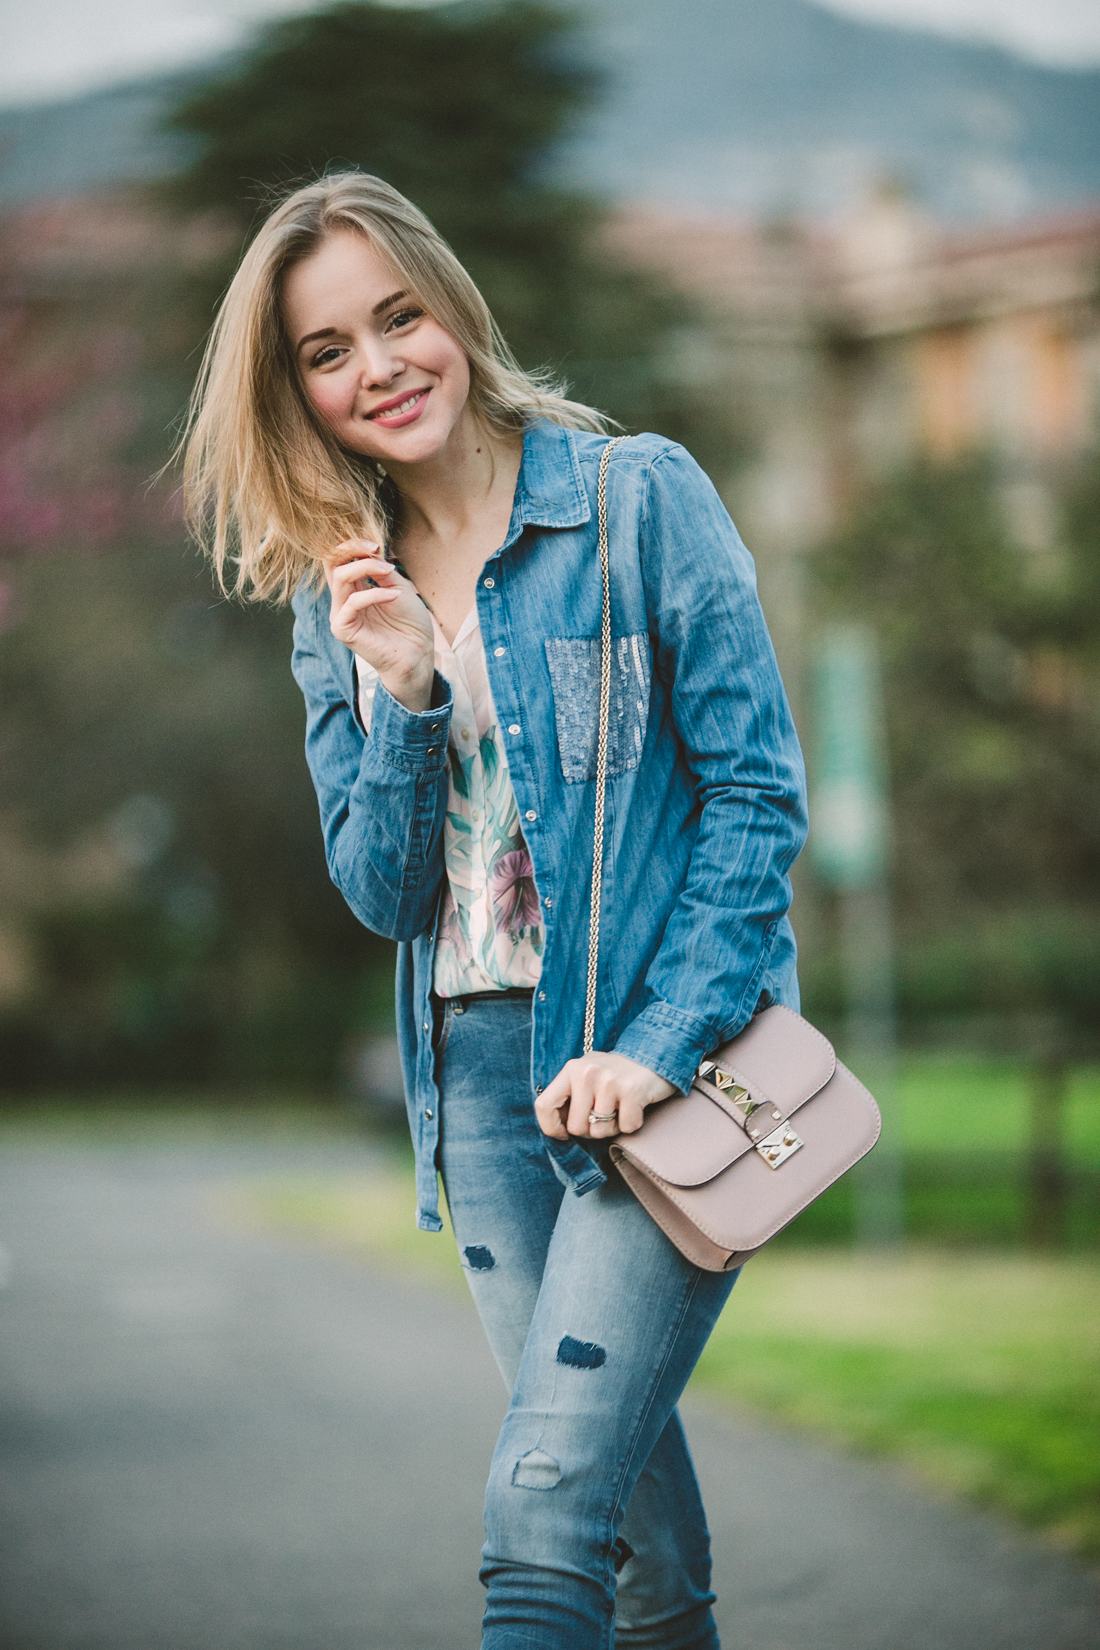 darya kamalova thecablook fashion lifestyle russian italian blogger wears total guess jeans myguess look with valentino rockstud glamrock cipria pale rose bag-4647